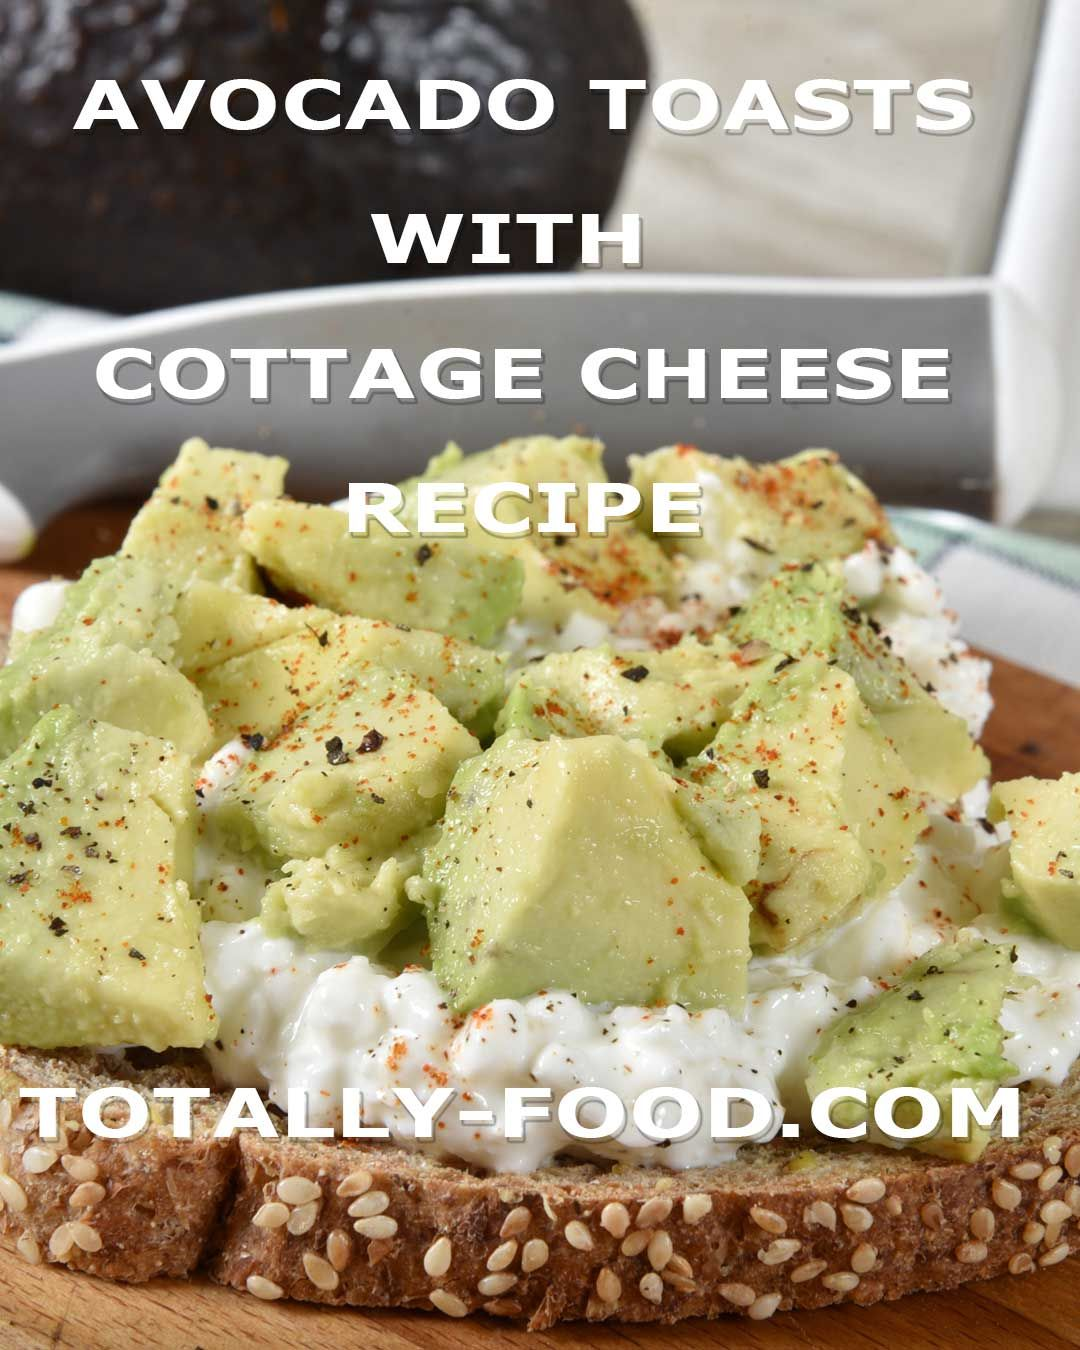 Avocado Cottage Cheese Toasts Totally Food Recipe Cottage Cheese Recipes Stuffed Avocado Healthy Recipes